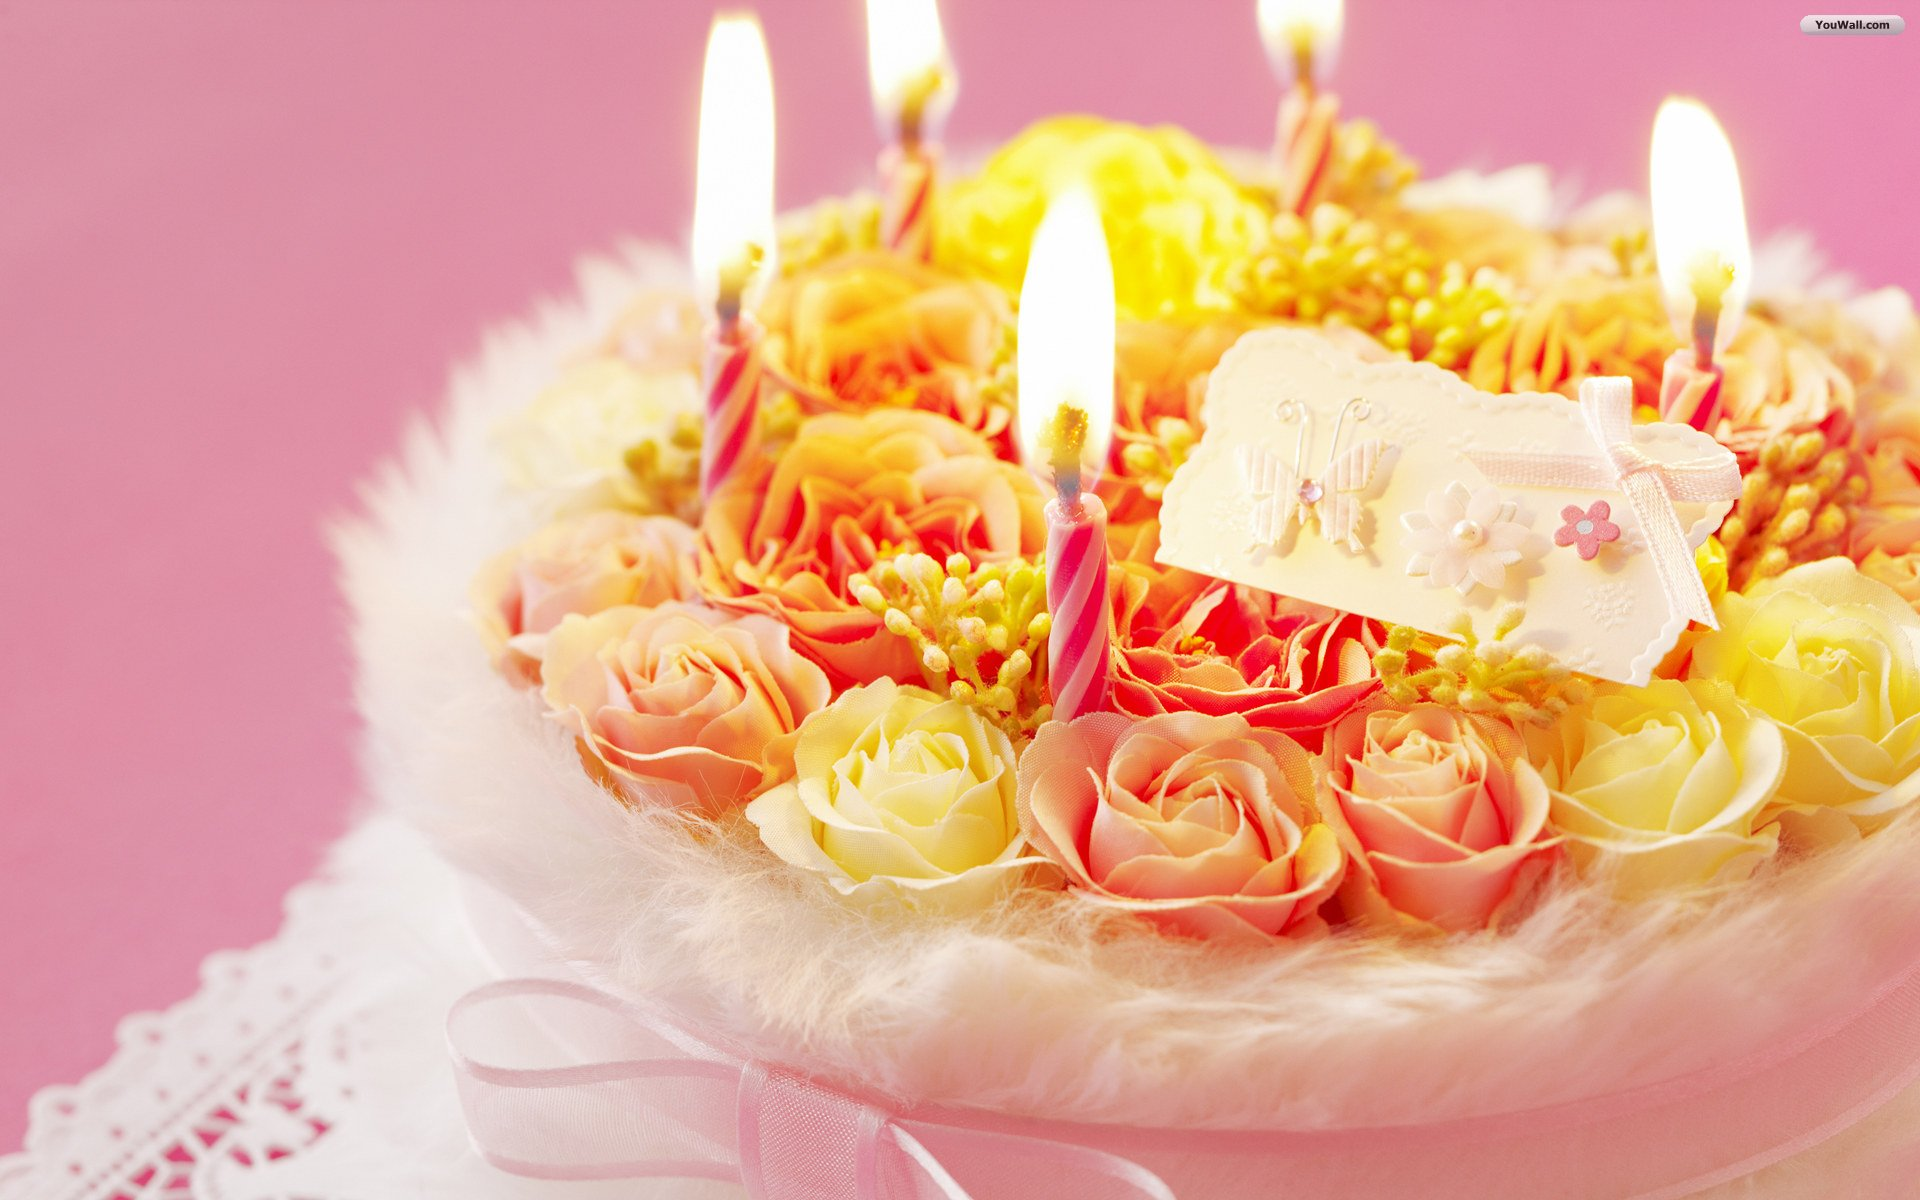 Funny Birthday Wishes That Can Give Your Friend a Big Laugh 4